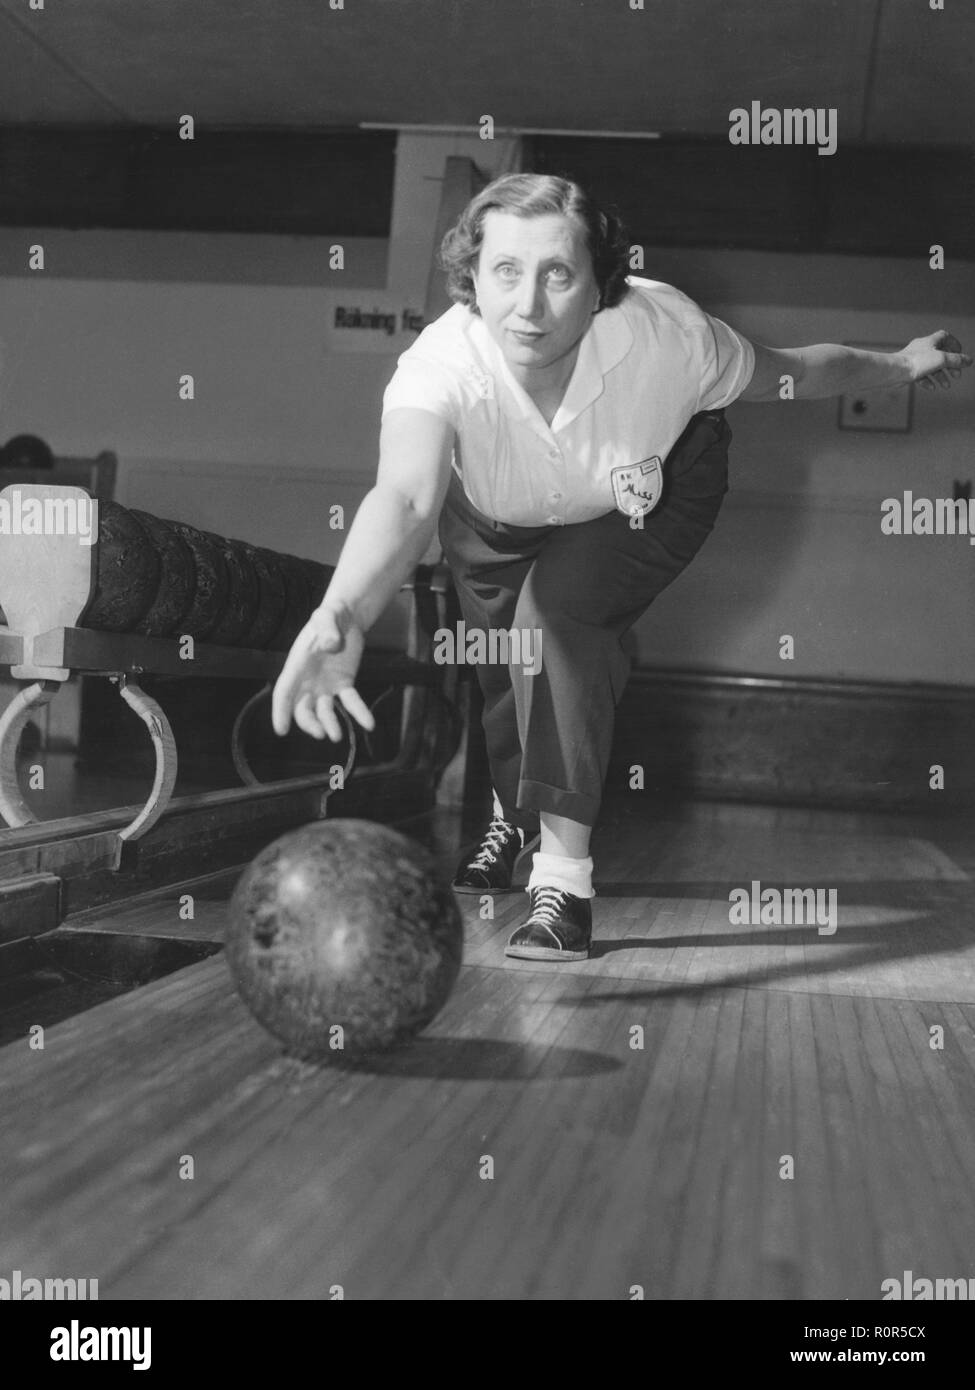 Bowling in the 1950s. Women bowler Maja Tuvesson throws the ball at a tournament 1956. Sweden - Stock Image